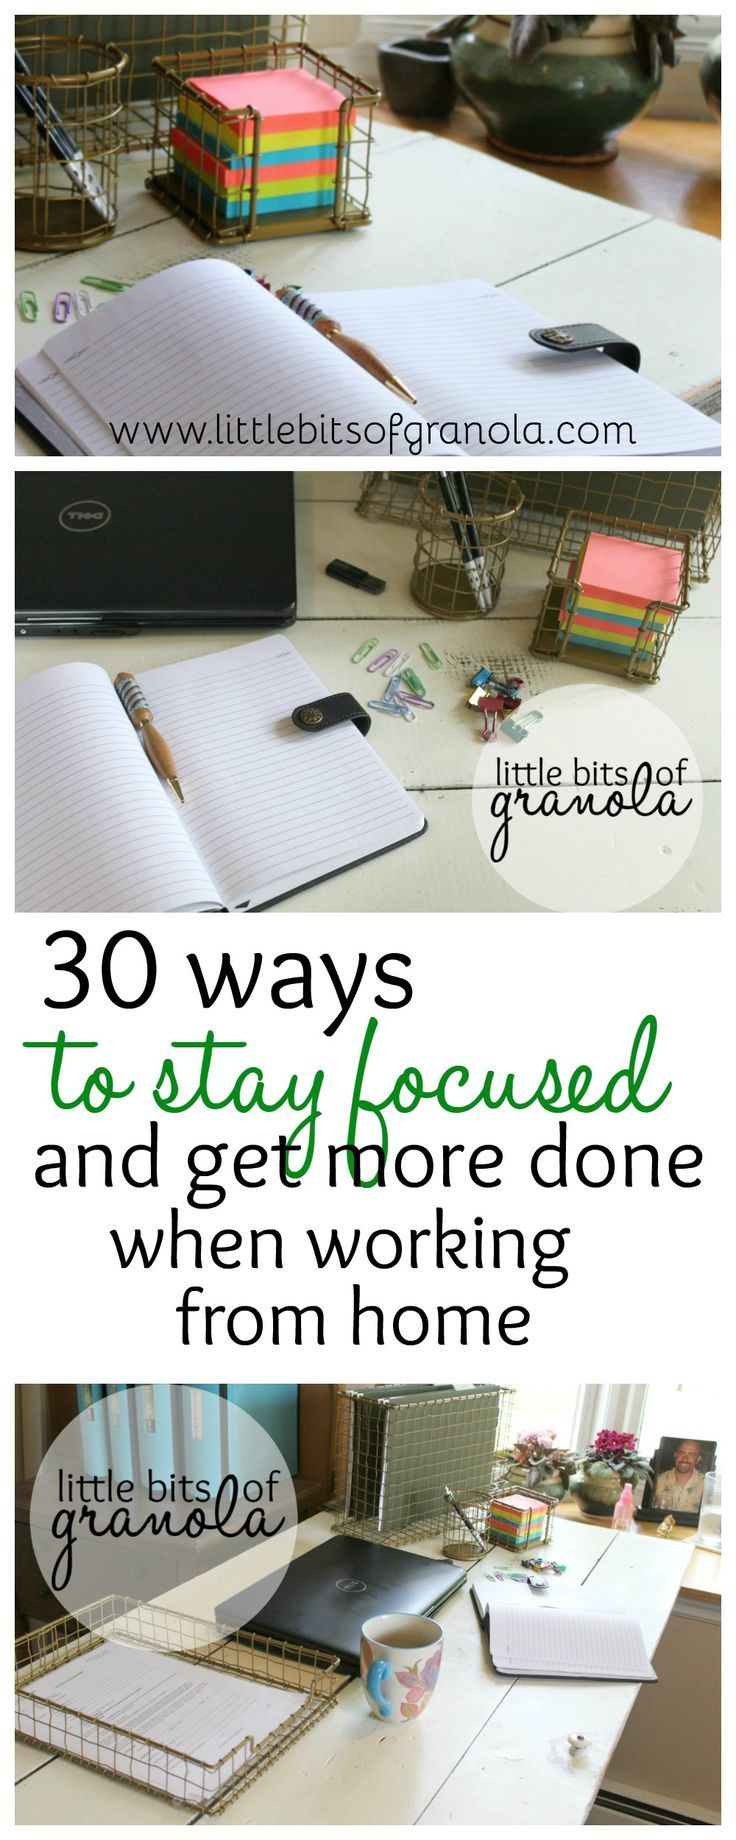 165 best Working From Home images on Pinterest   Blogging, Content ...